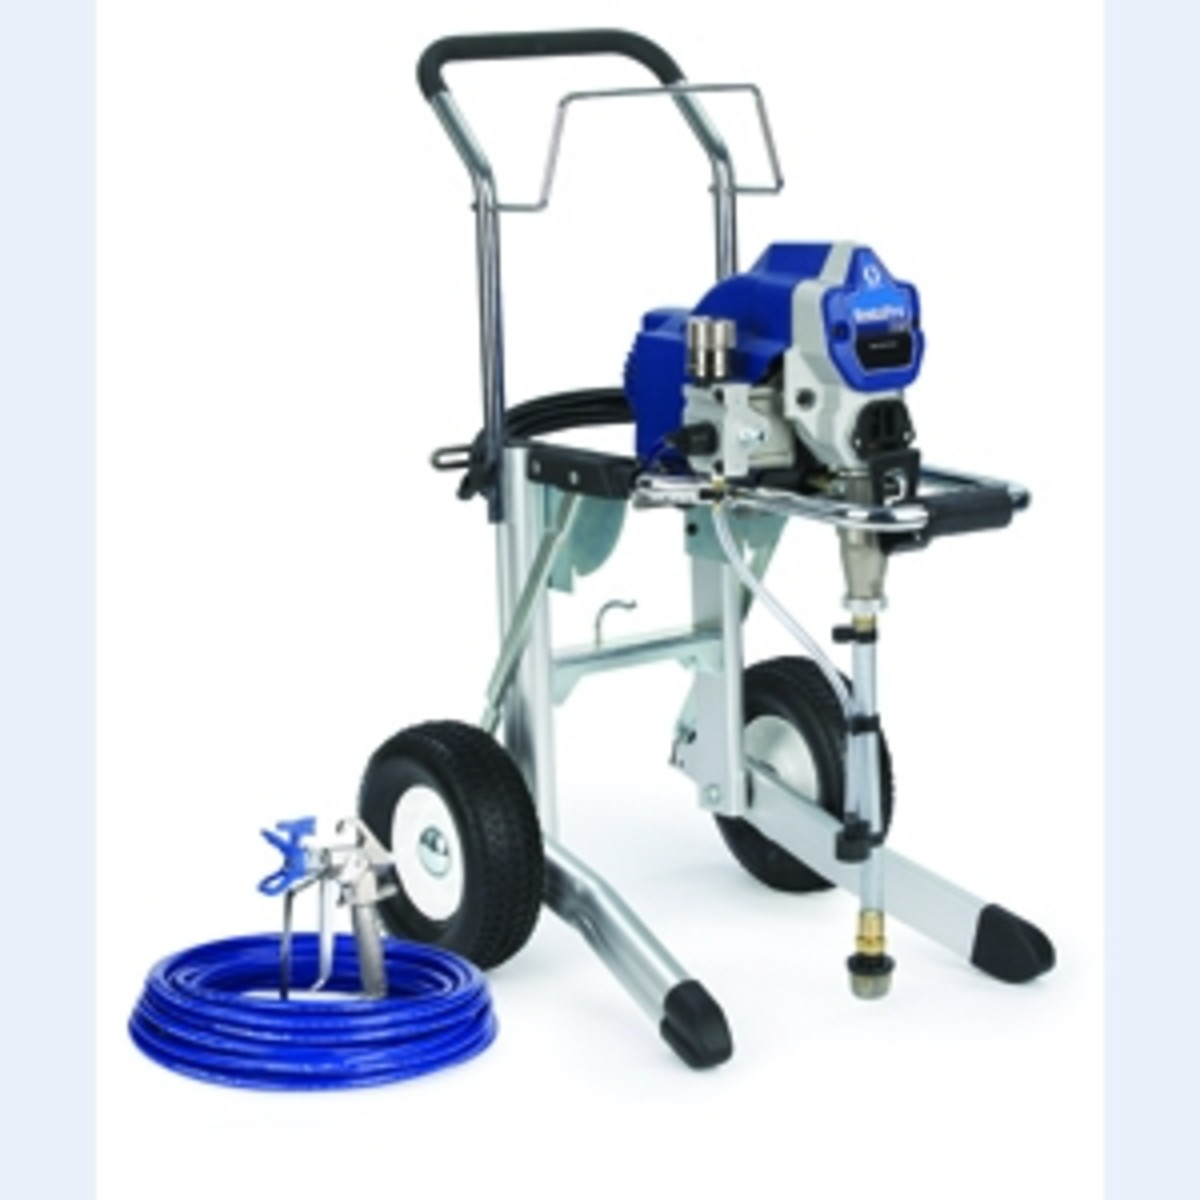 How to Choose A Paint Sprayer Rental